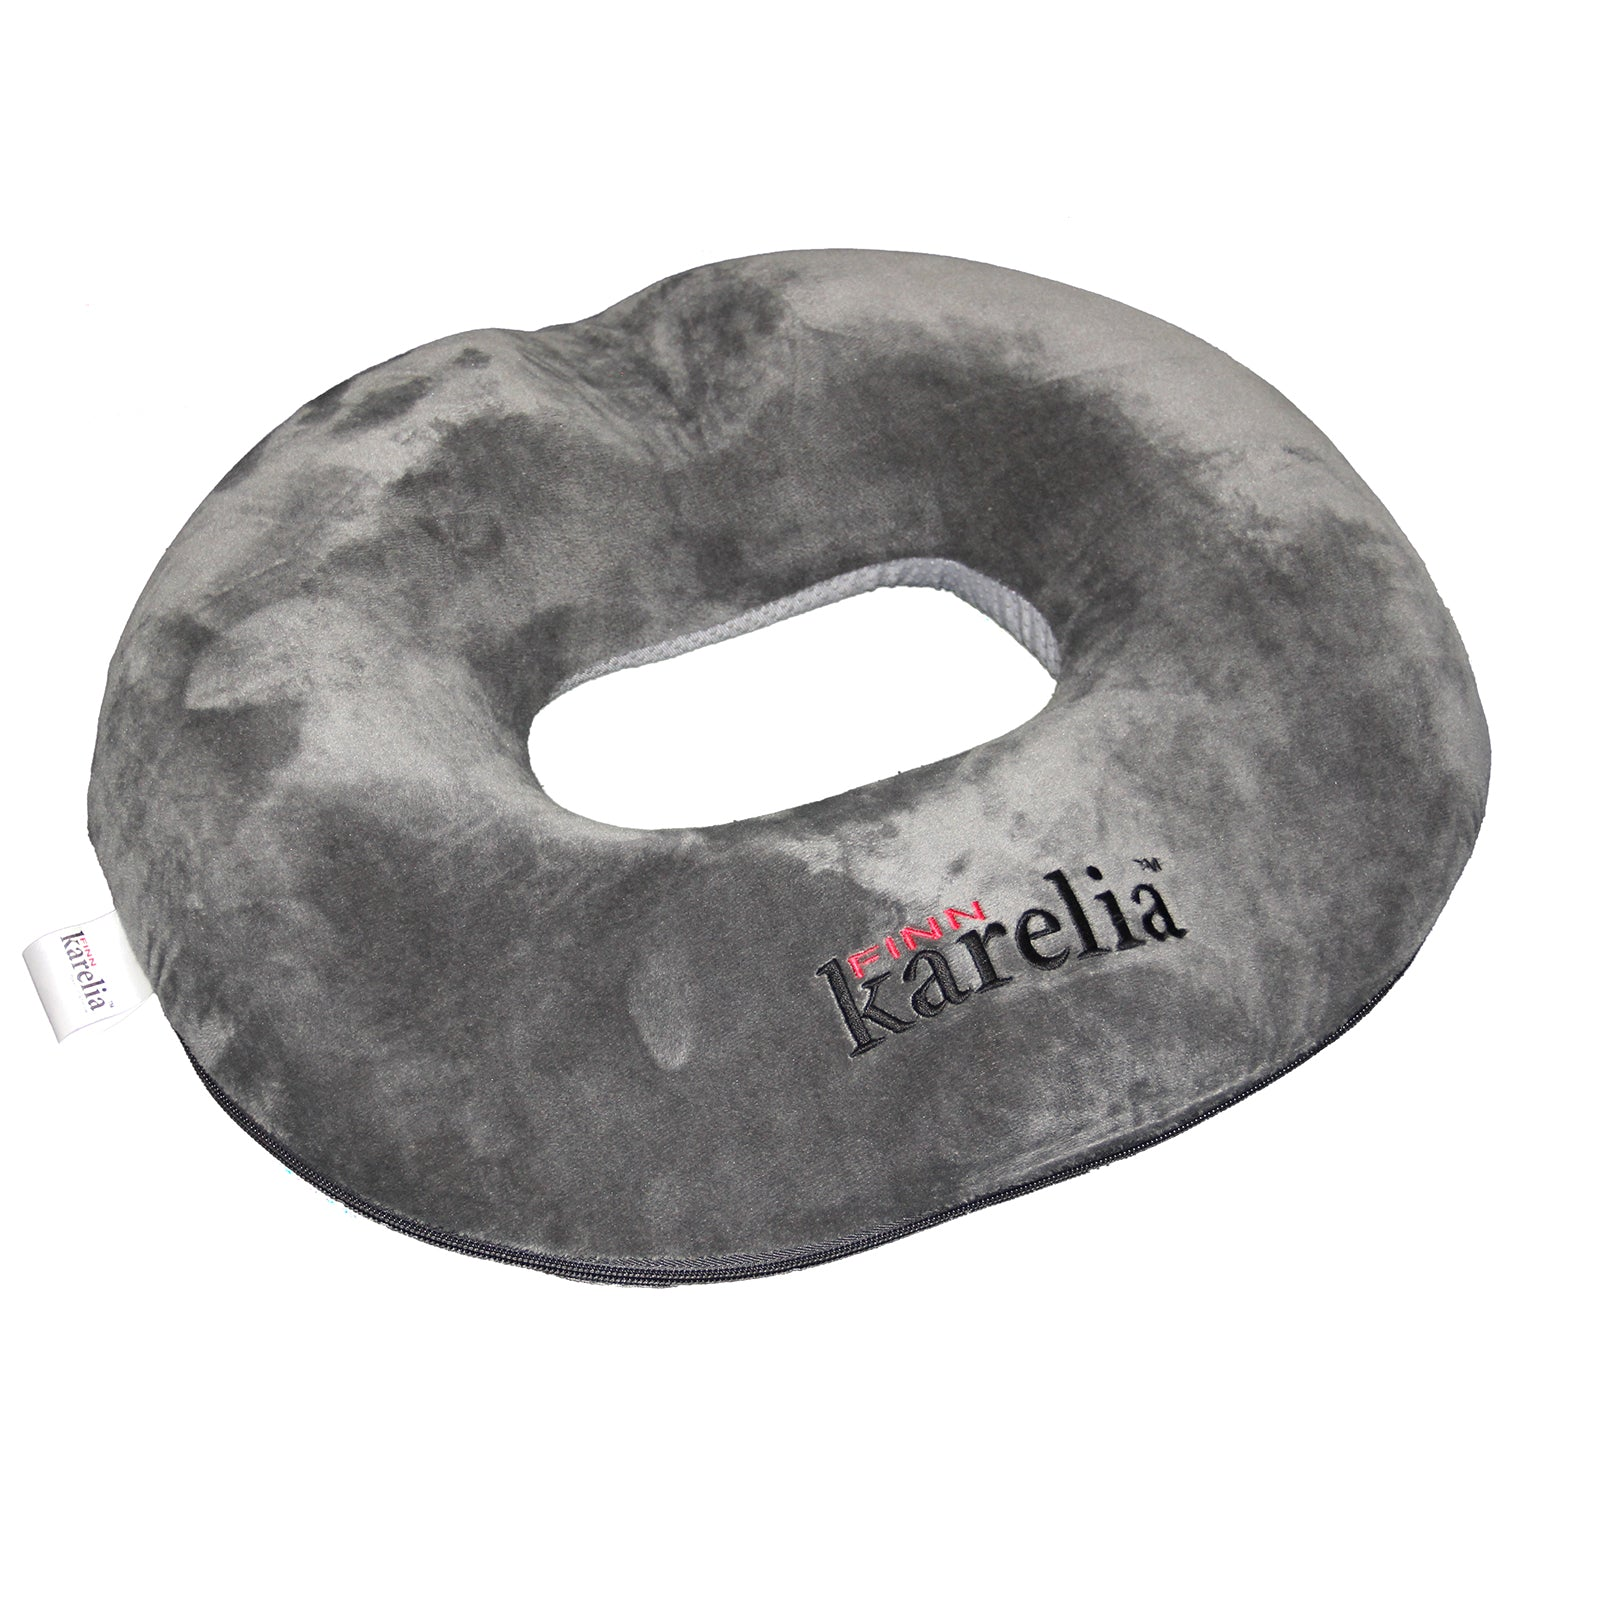 Finn Karelia Memory Foam Donut Seat Cushion For Everyday Use Firm